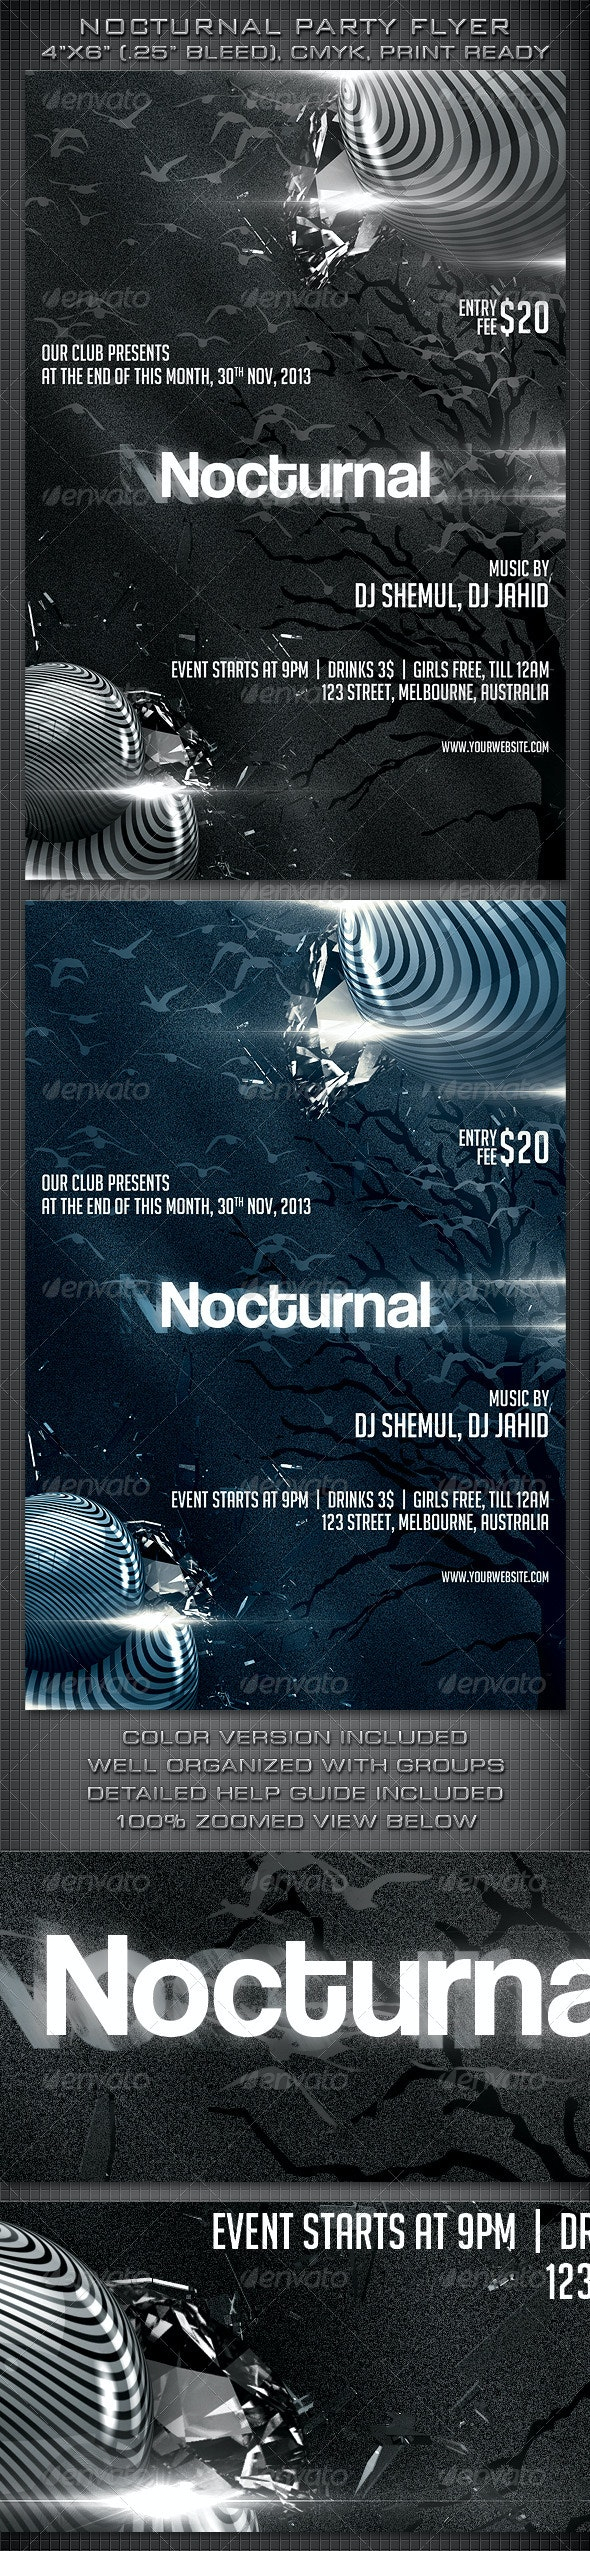 Nocturnal Party Flyer - Clubs & Parties Events